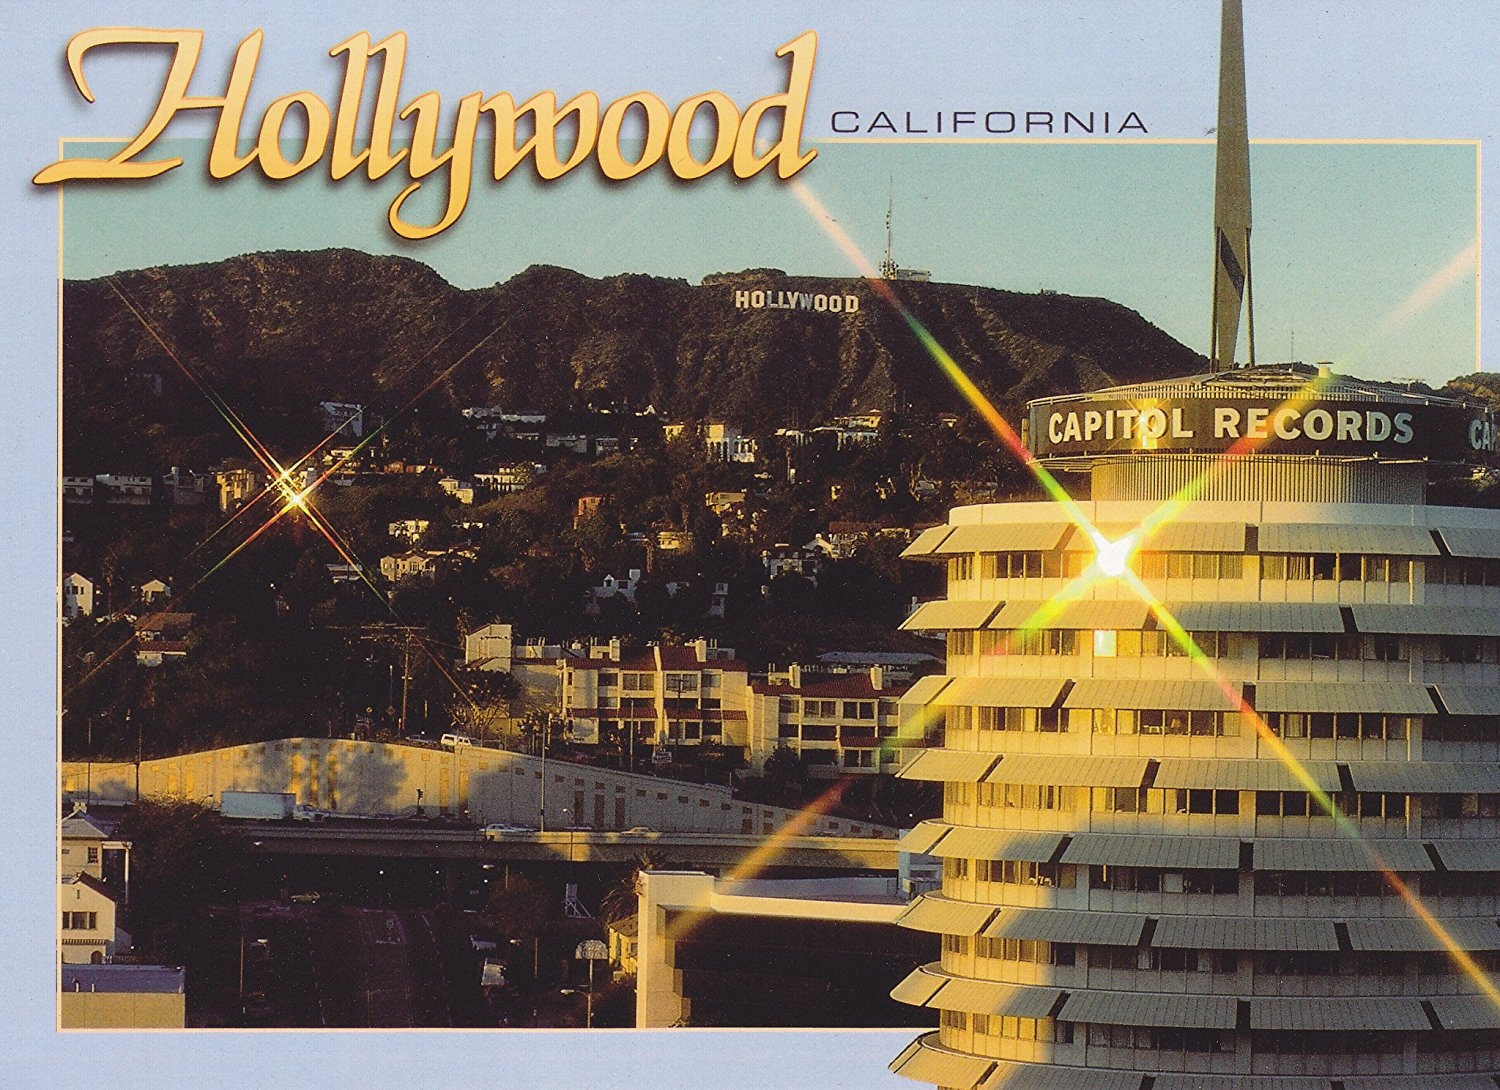 "TRKLA227 LA-227 HOLLYWOOD, CALIFORNIA, The sun begins to set over Hollywood and glimmers off the Capitol Records Building .. .. - [[ 7"" x 5"" POSTCARD ]].. From Hibiscus Express"